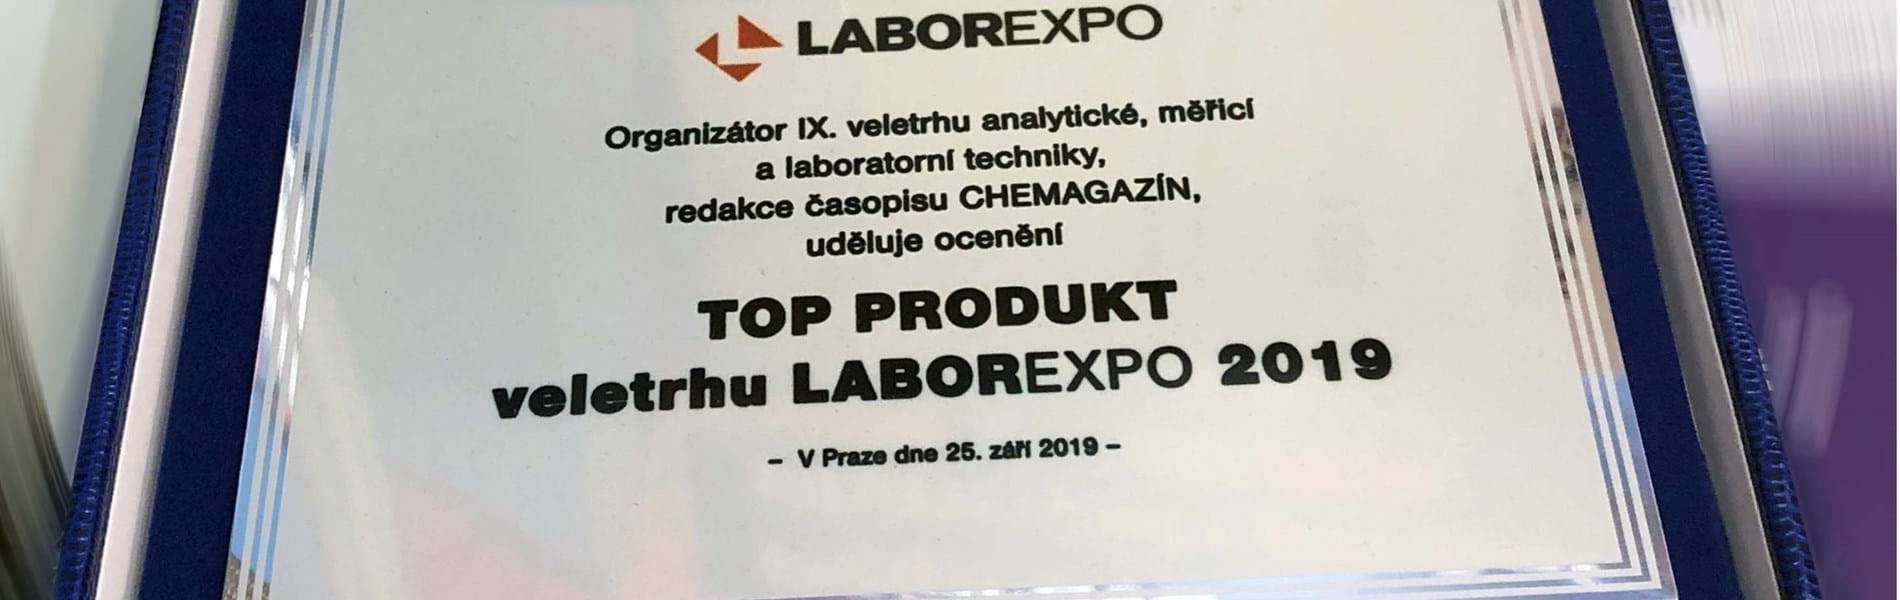 Centri crowned 'Top Product' at Laborexpo 2019